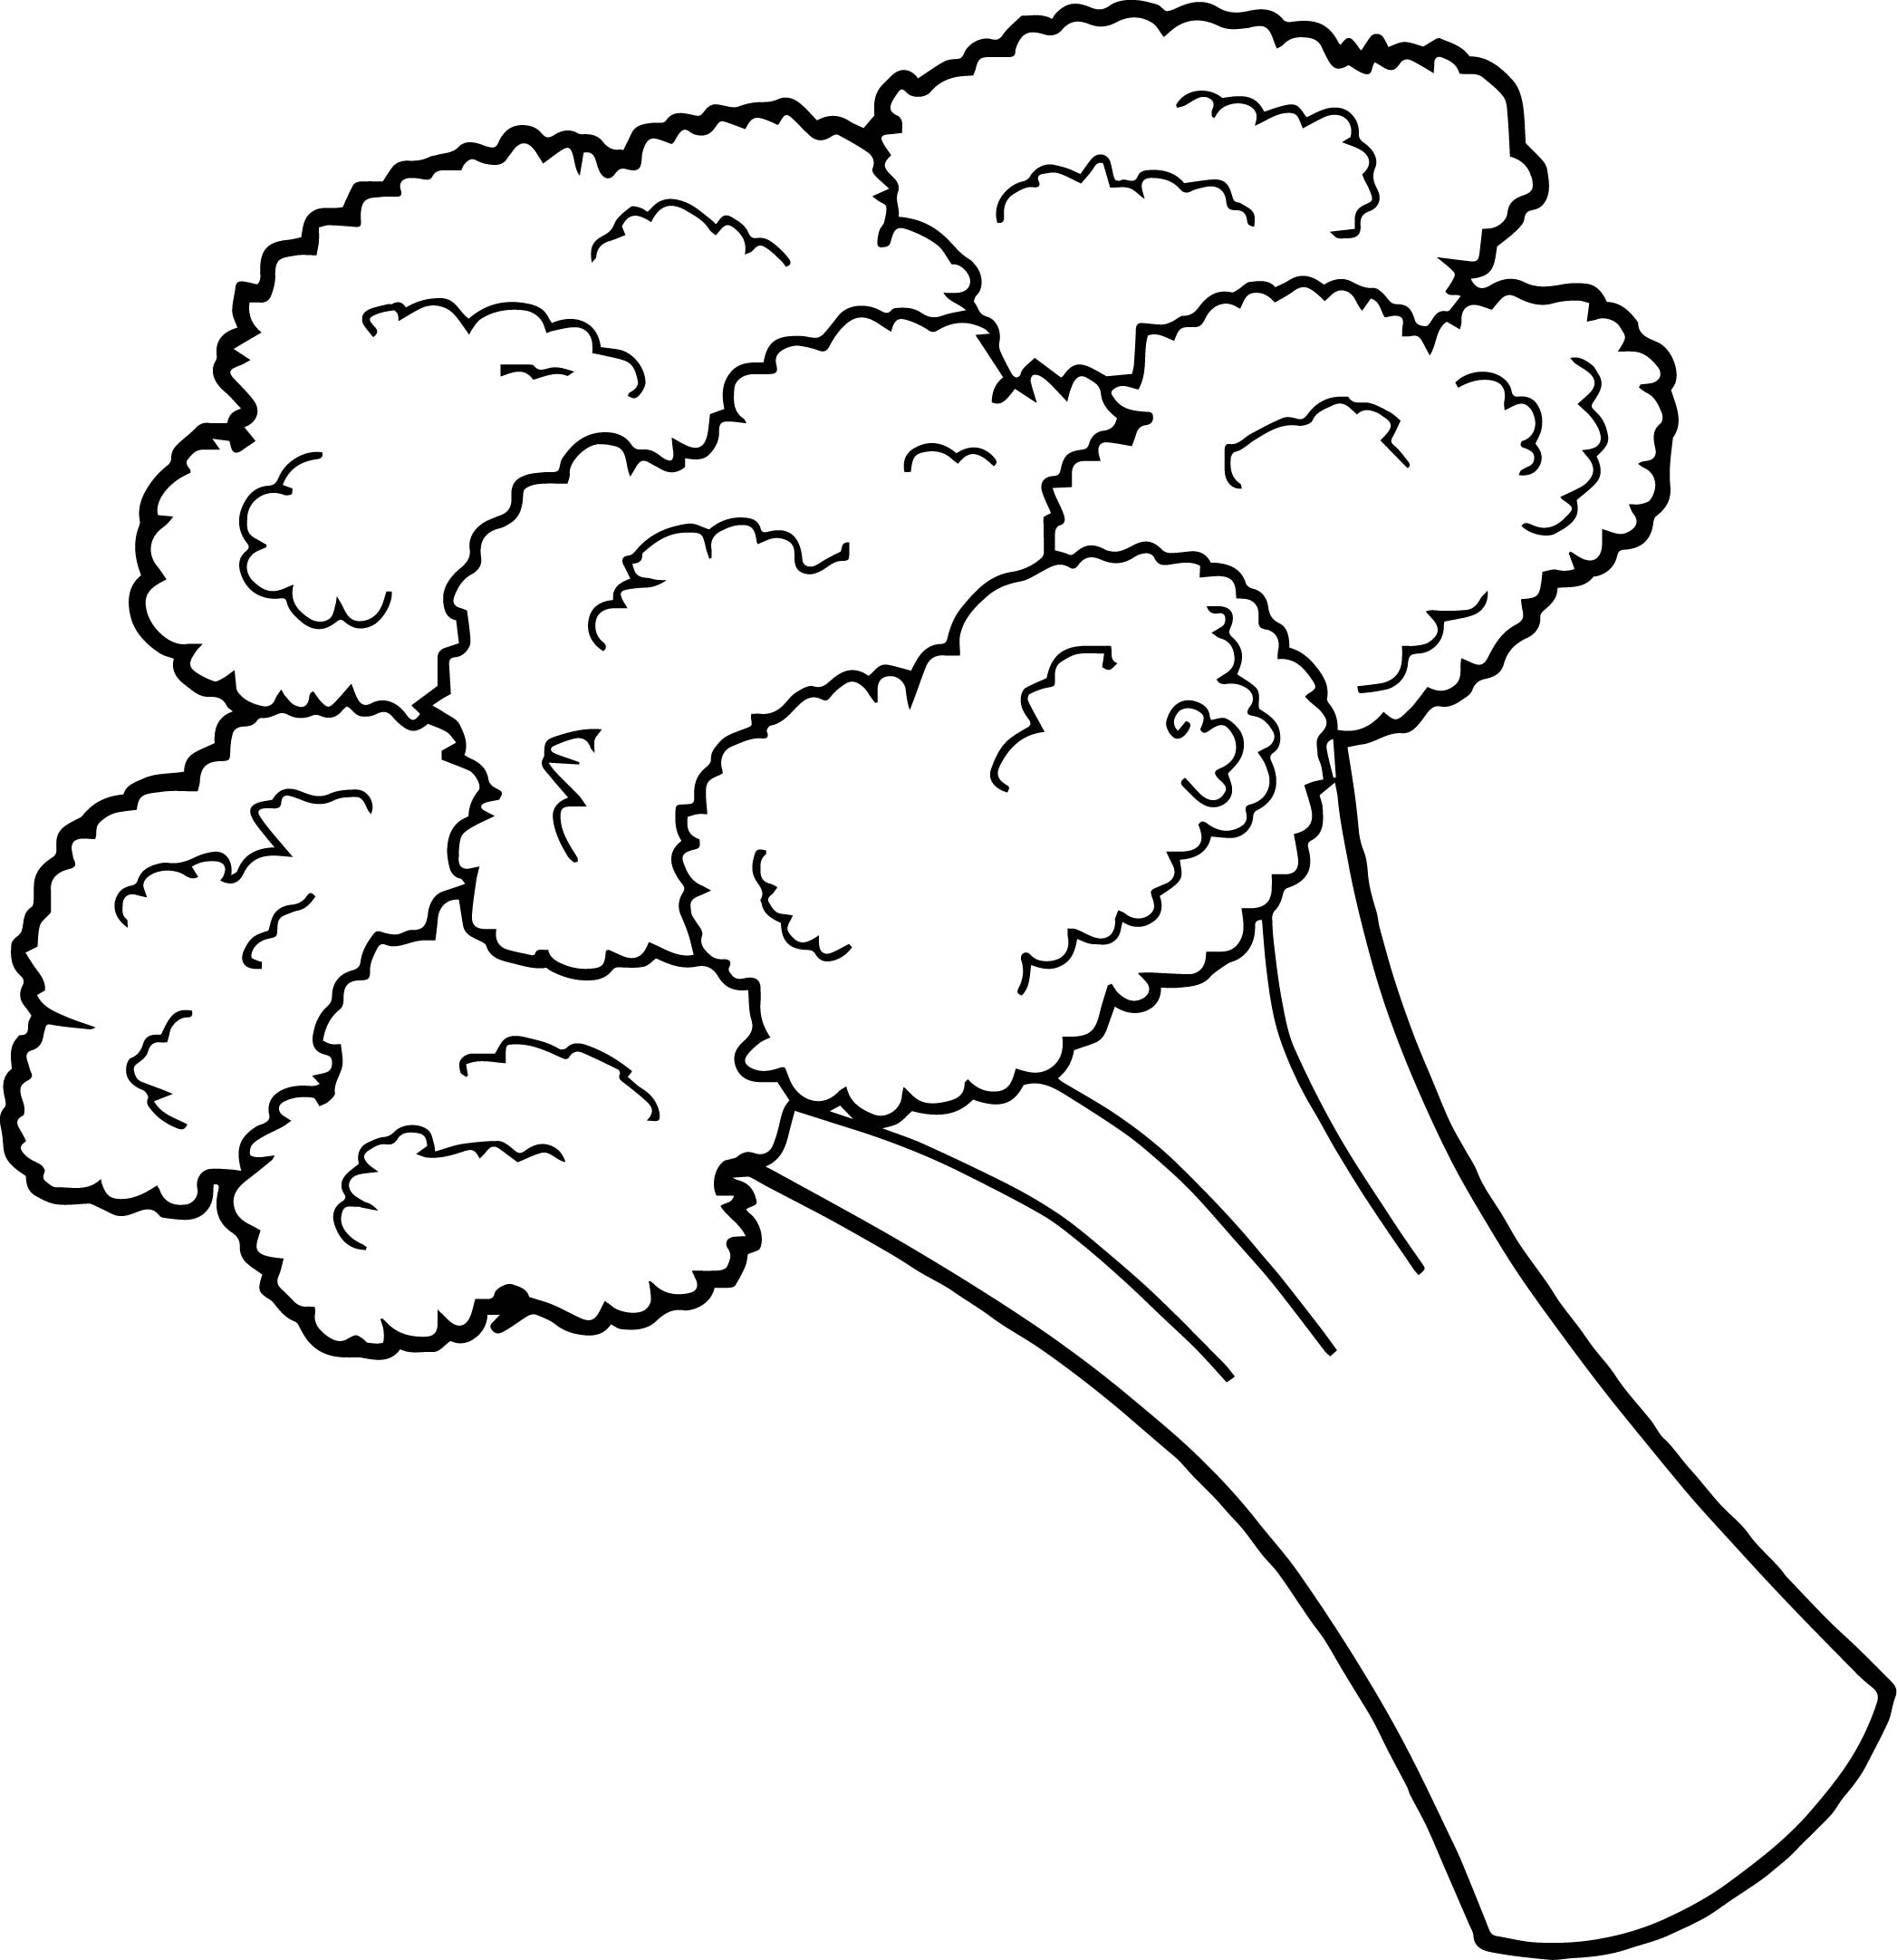 preschool vegetable coloring pages the quandong tree colouring pages preschool coloring vegetable pages